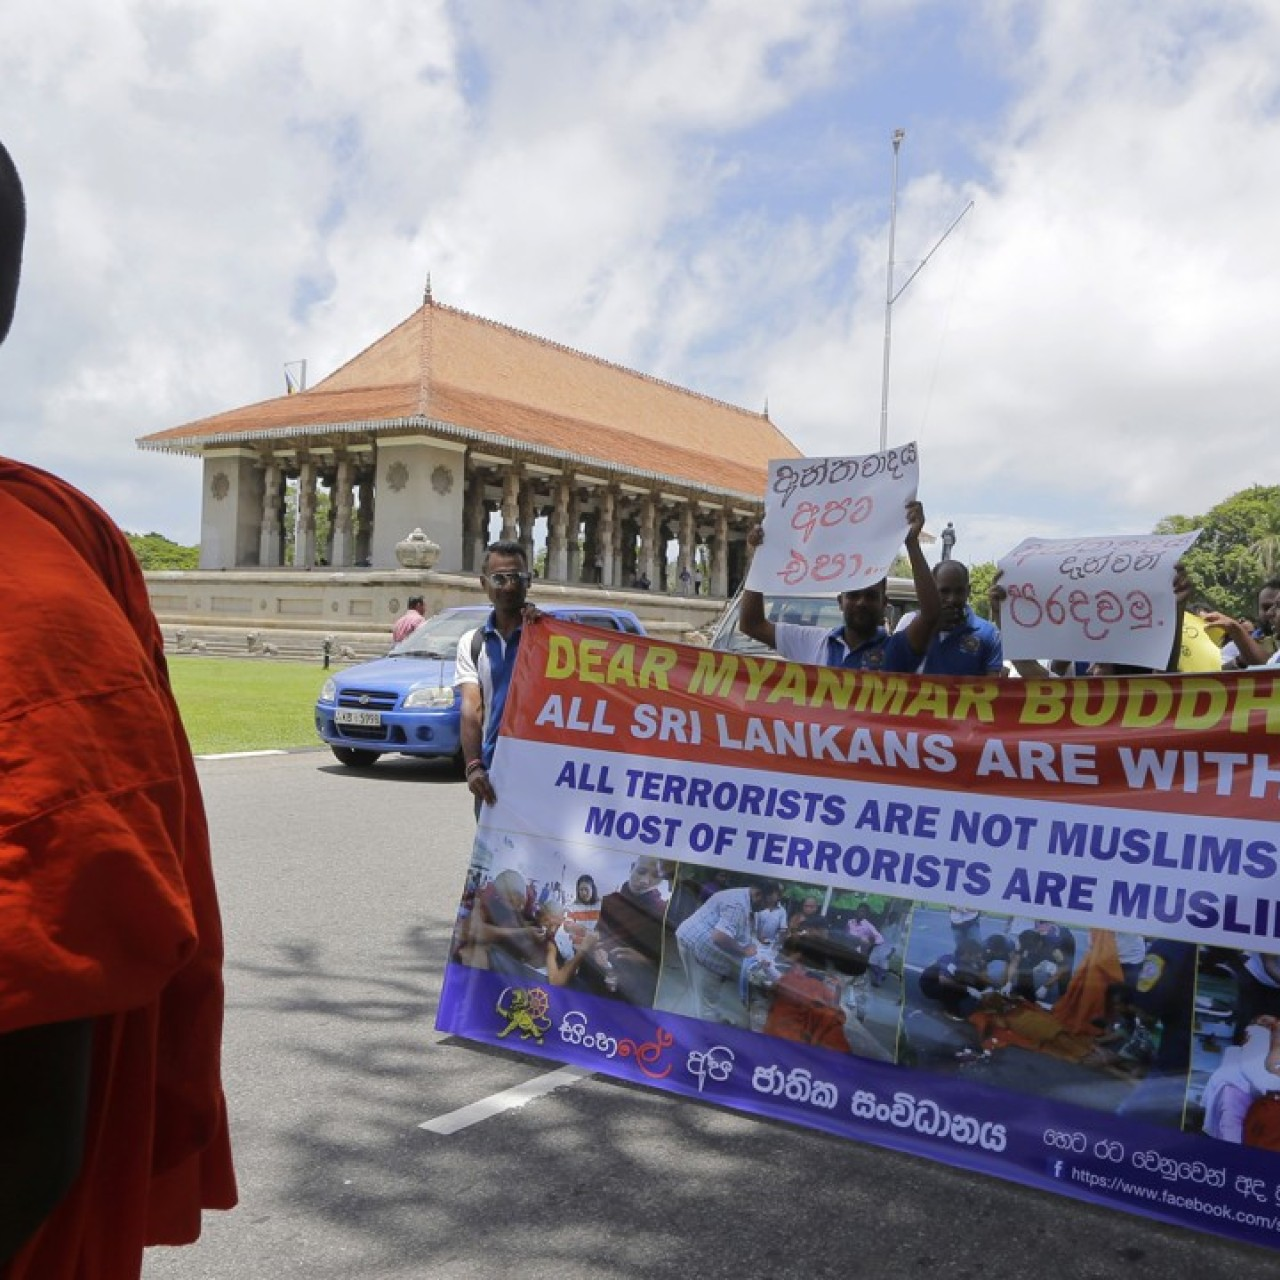 Hardline Buddhist monks storm UN 'safe house' in Sri Lanka to attack